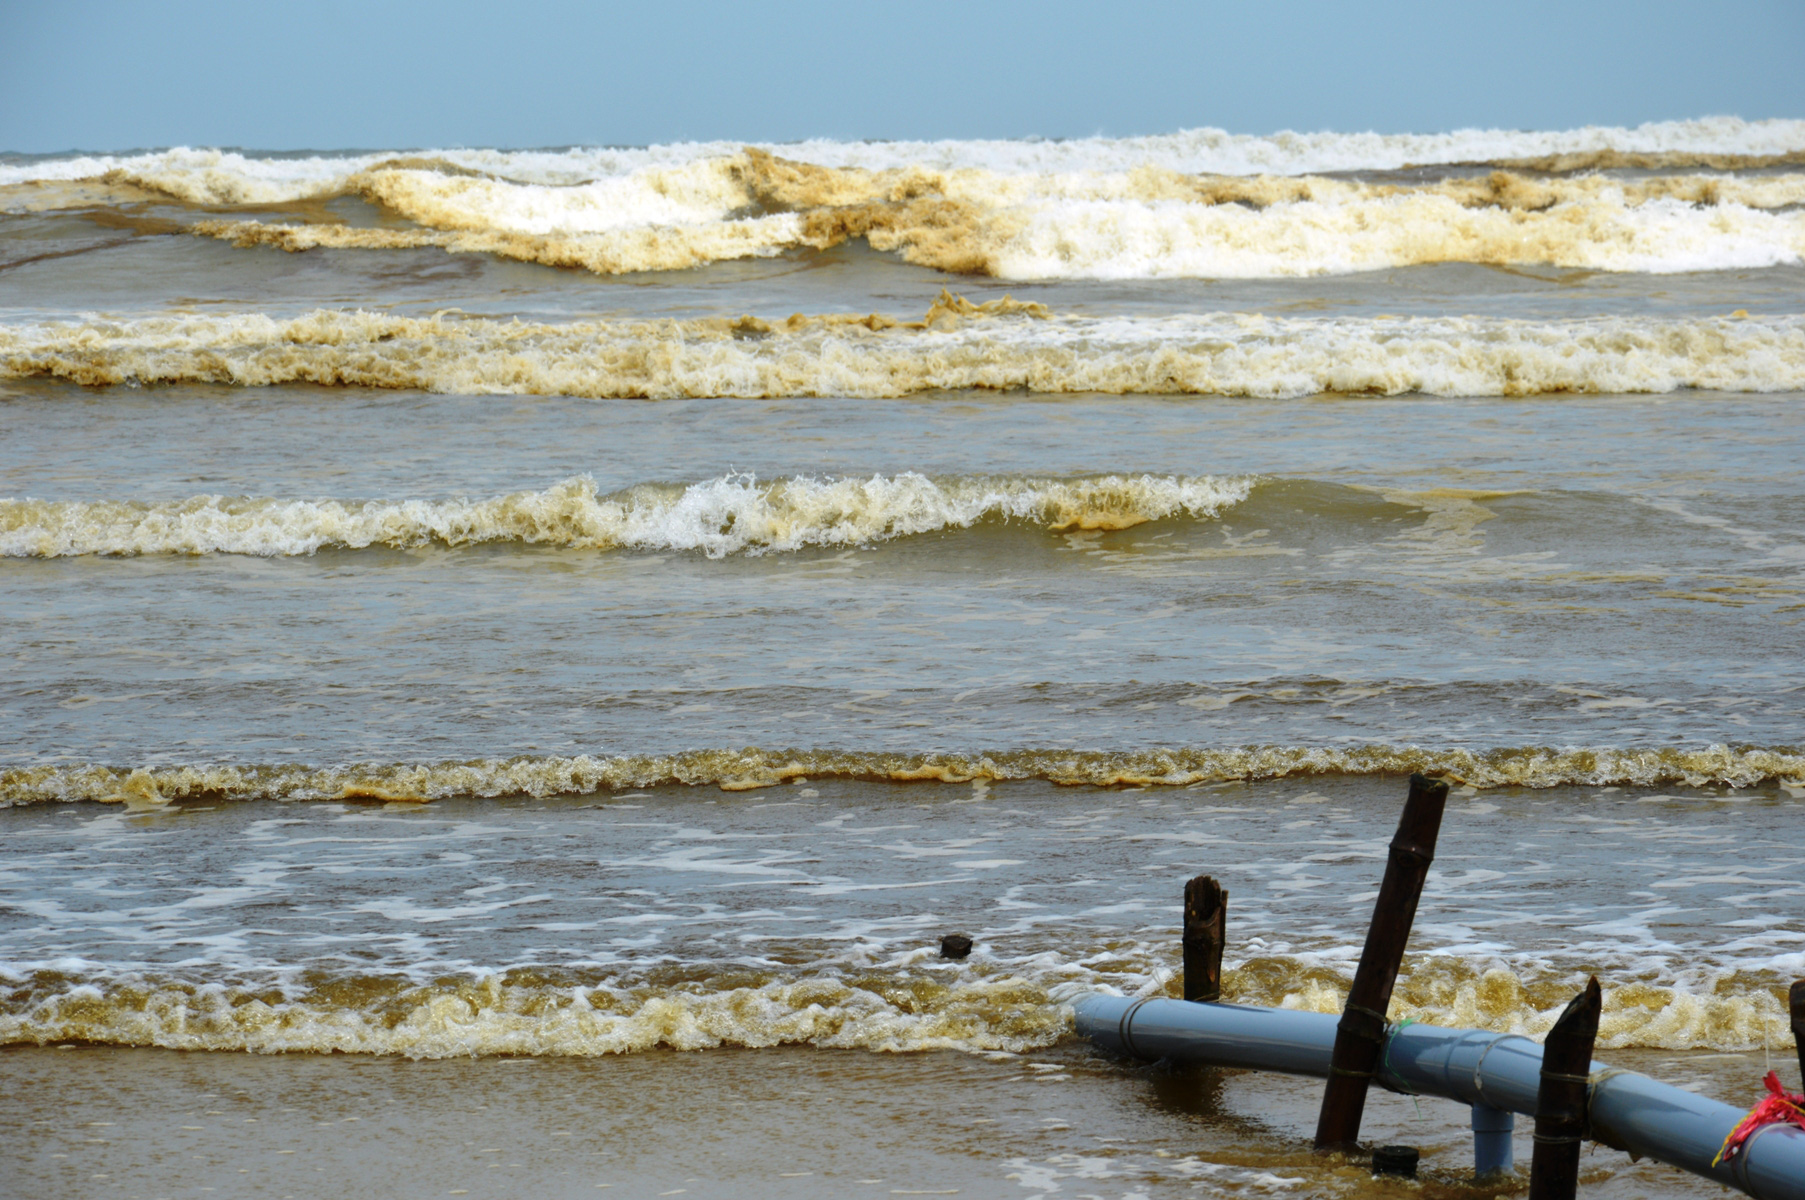 The affected beach is located near the Dung Quoc Economic Zone. Photo: Tran Mai / Tuoi Tre